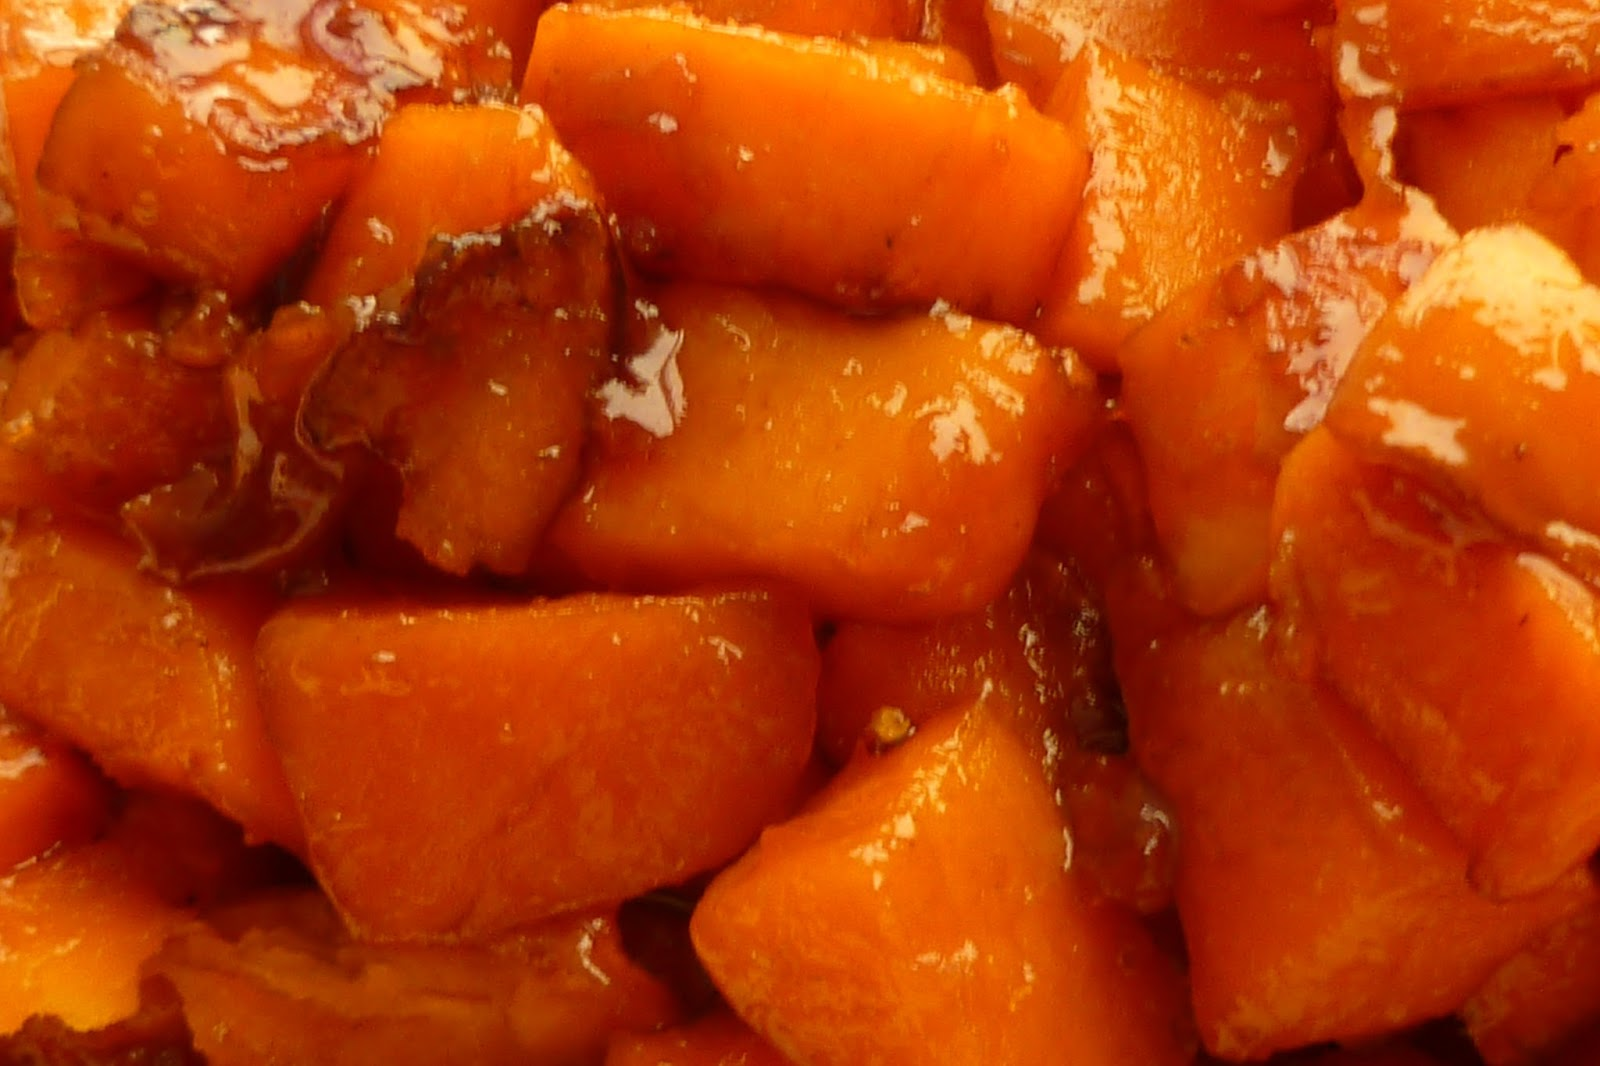 The Pastry Chef's Baking: Caramelized Sweet Potatoes